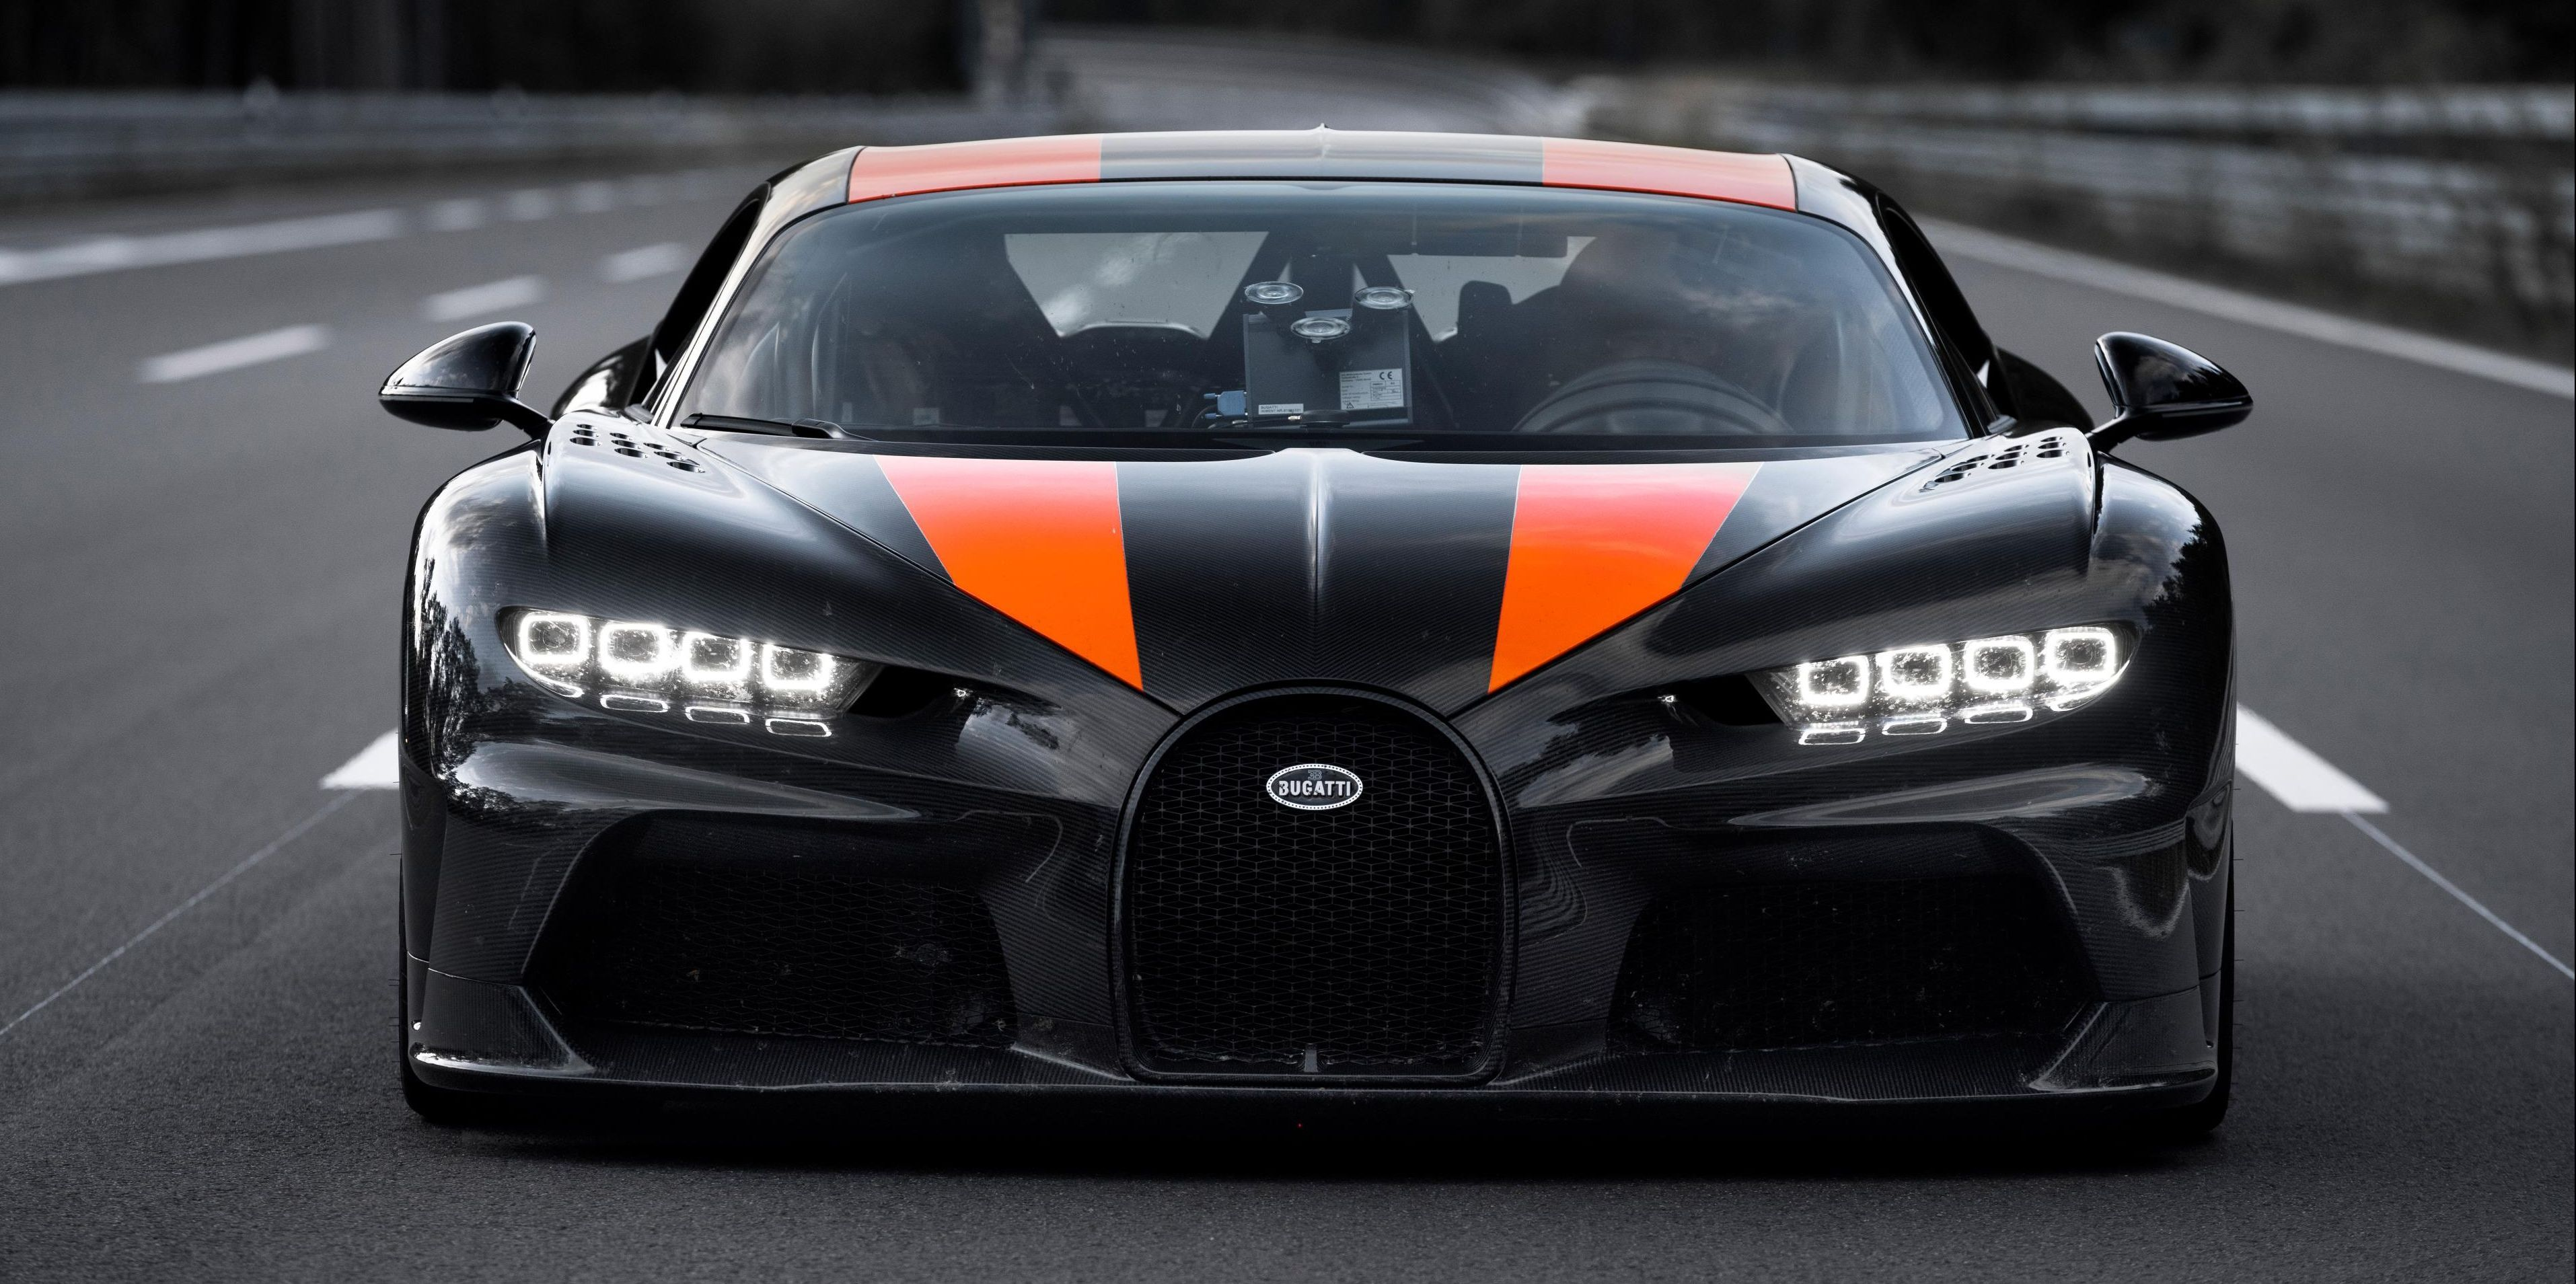 The Bugatti Chiron Super Sport 300 Briefly Went Airborne During Its Record Run Bugatti Chiron Bugatti Super Cars